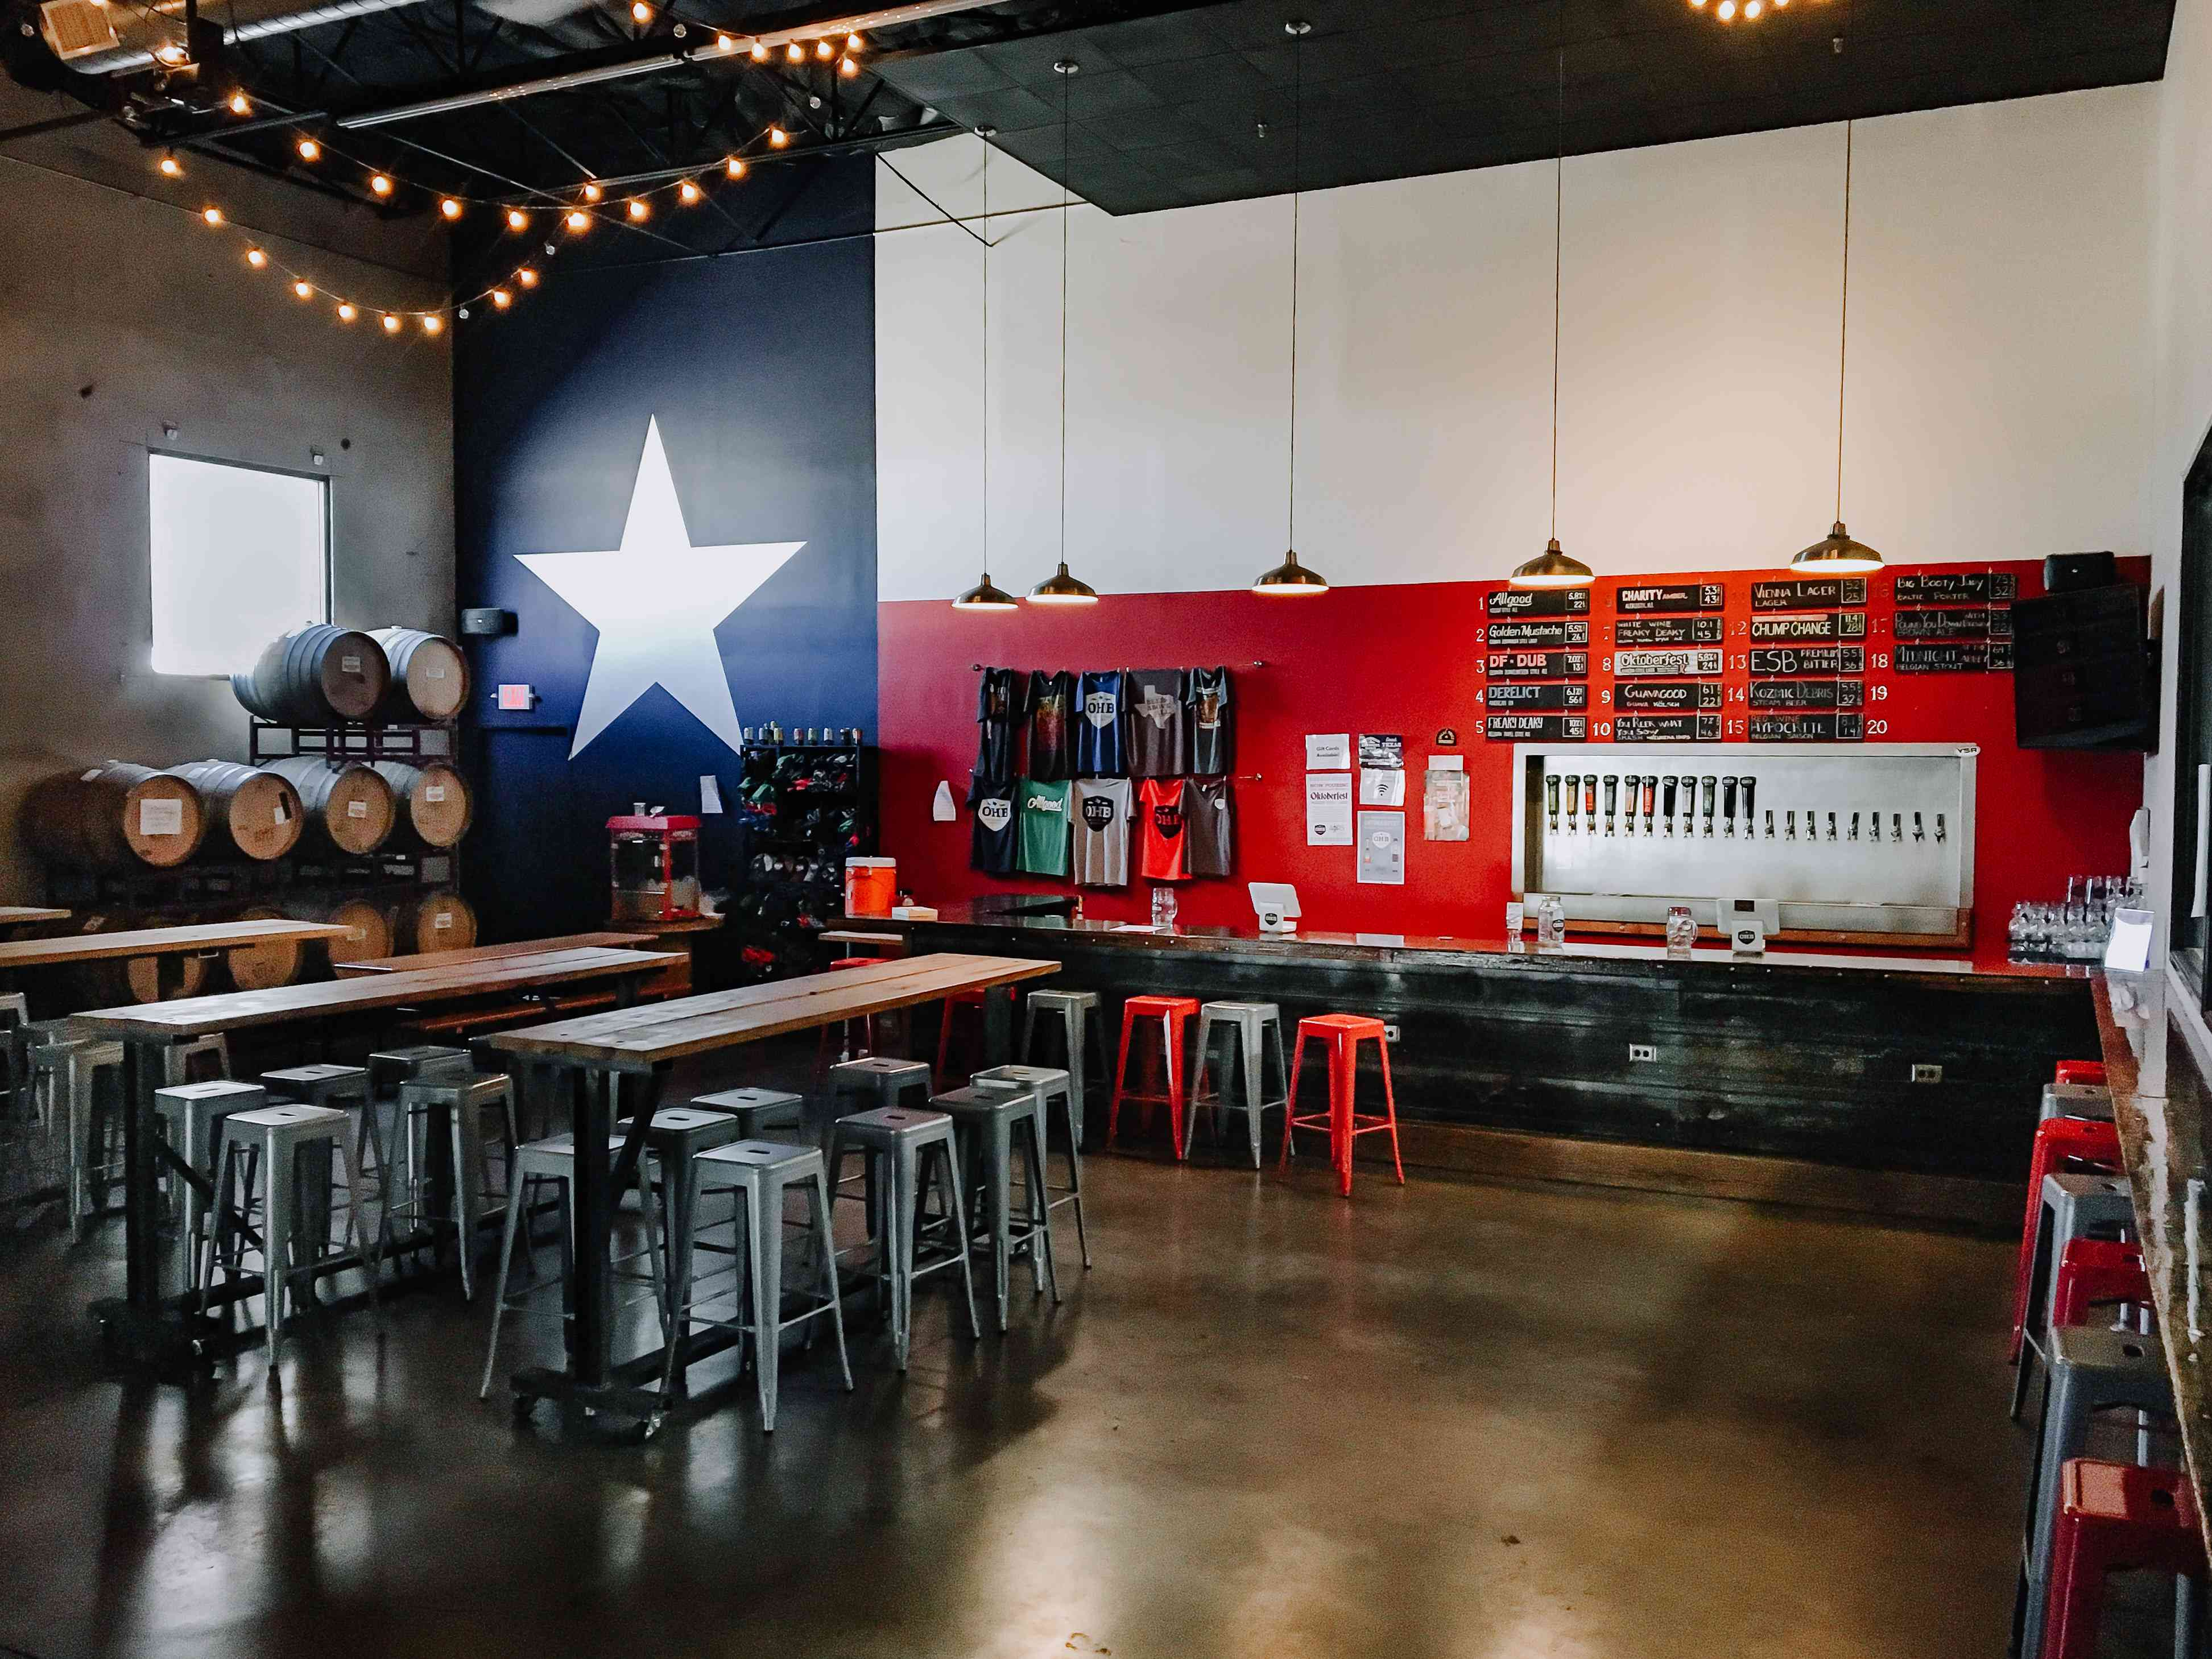 Oak Highlands Brewery taproom with a large white star painted on one wall